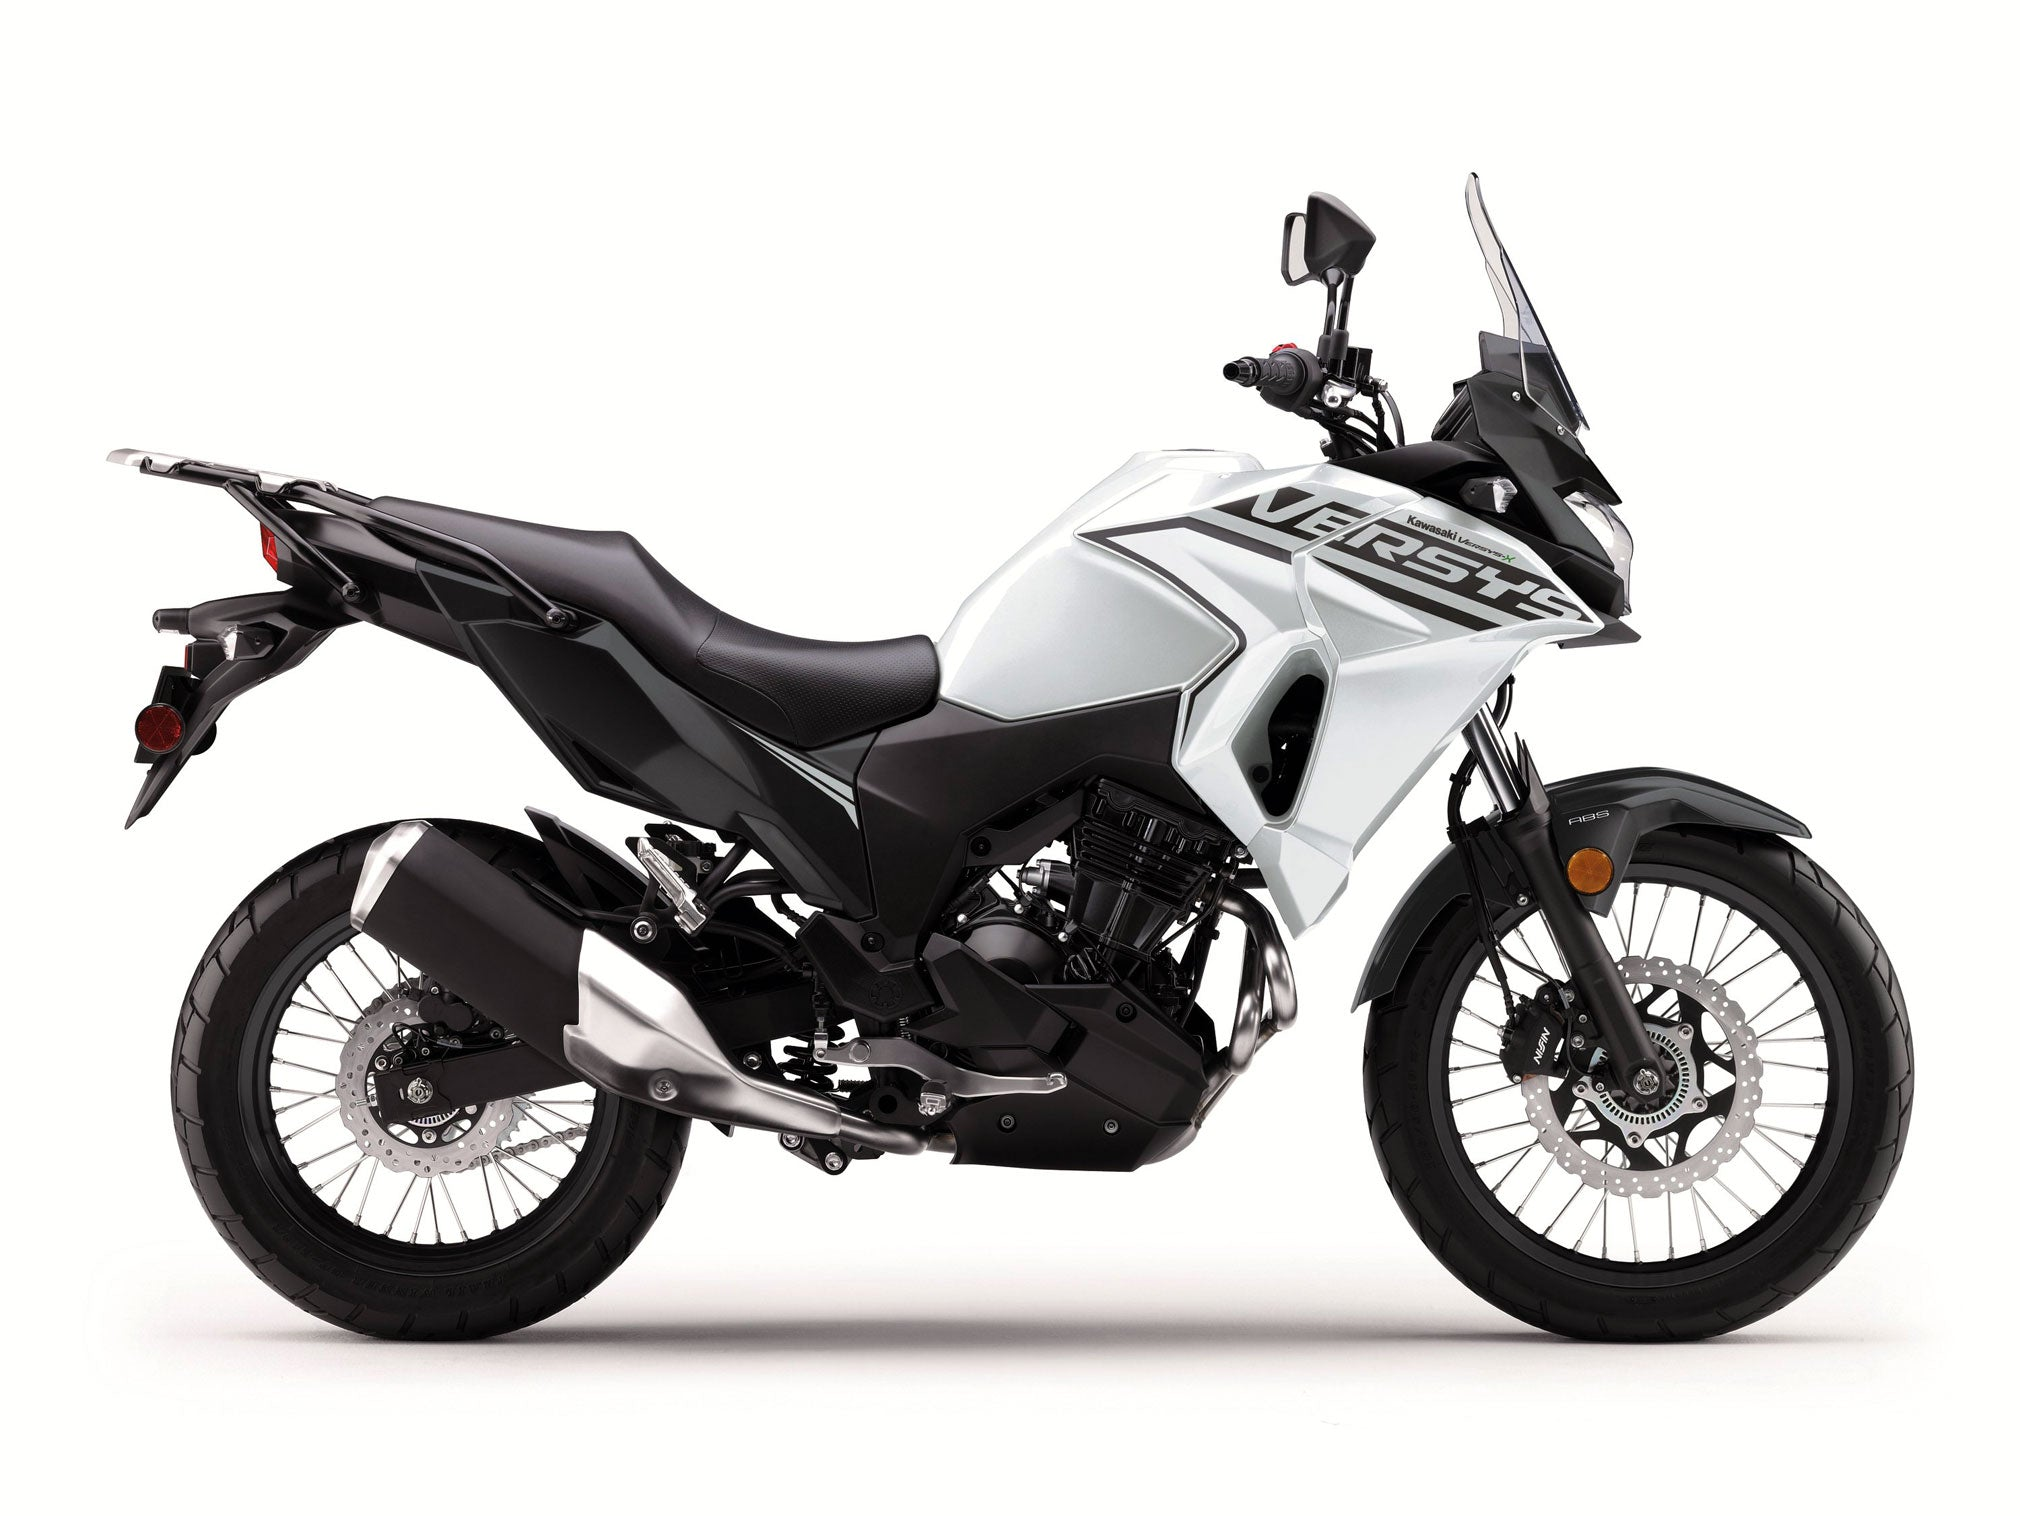 Kawasaki Versys-X 300 - price starting at $5,899